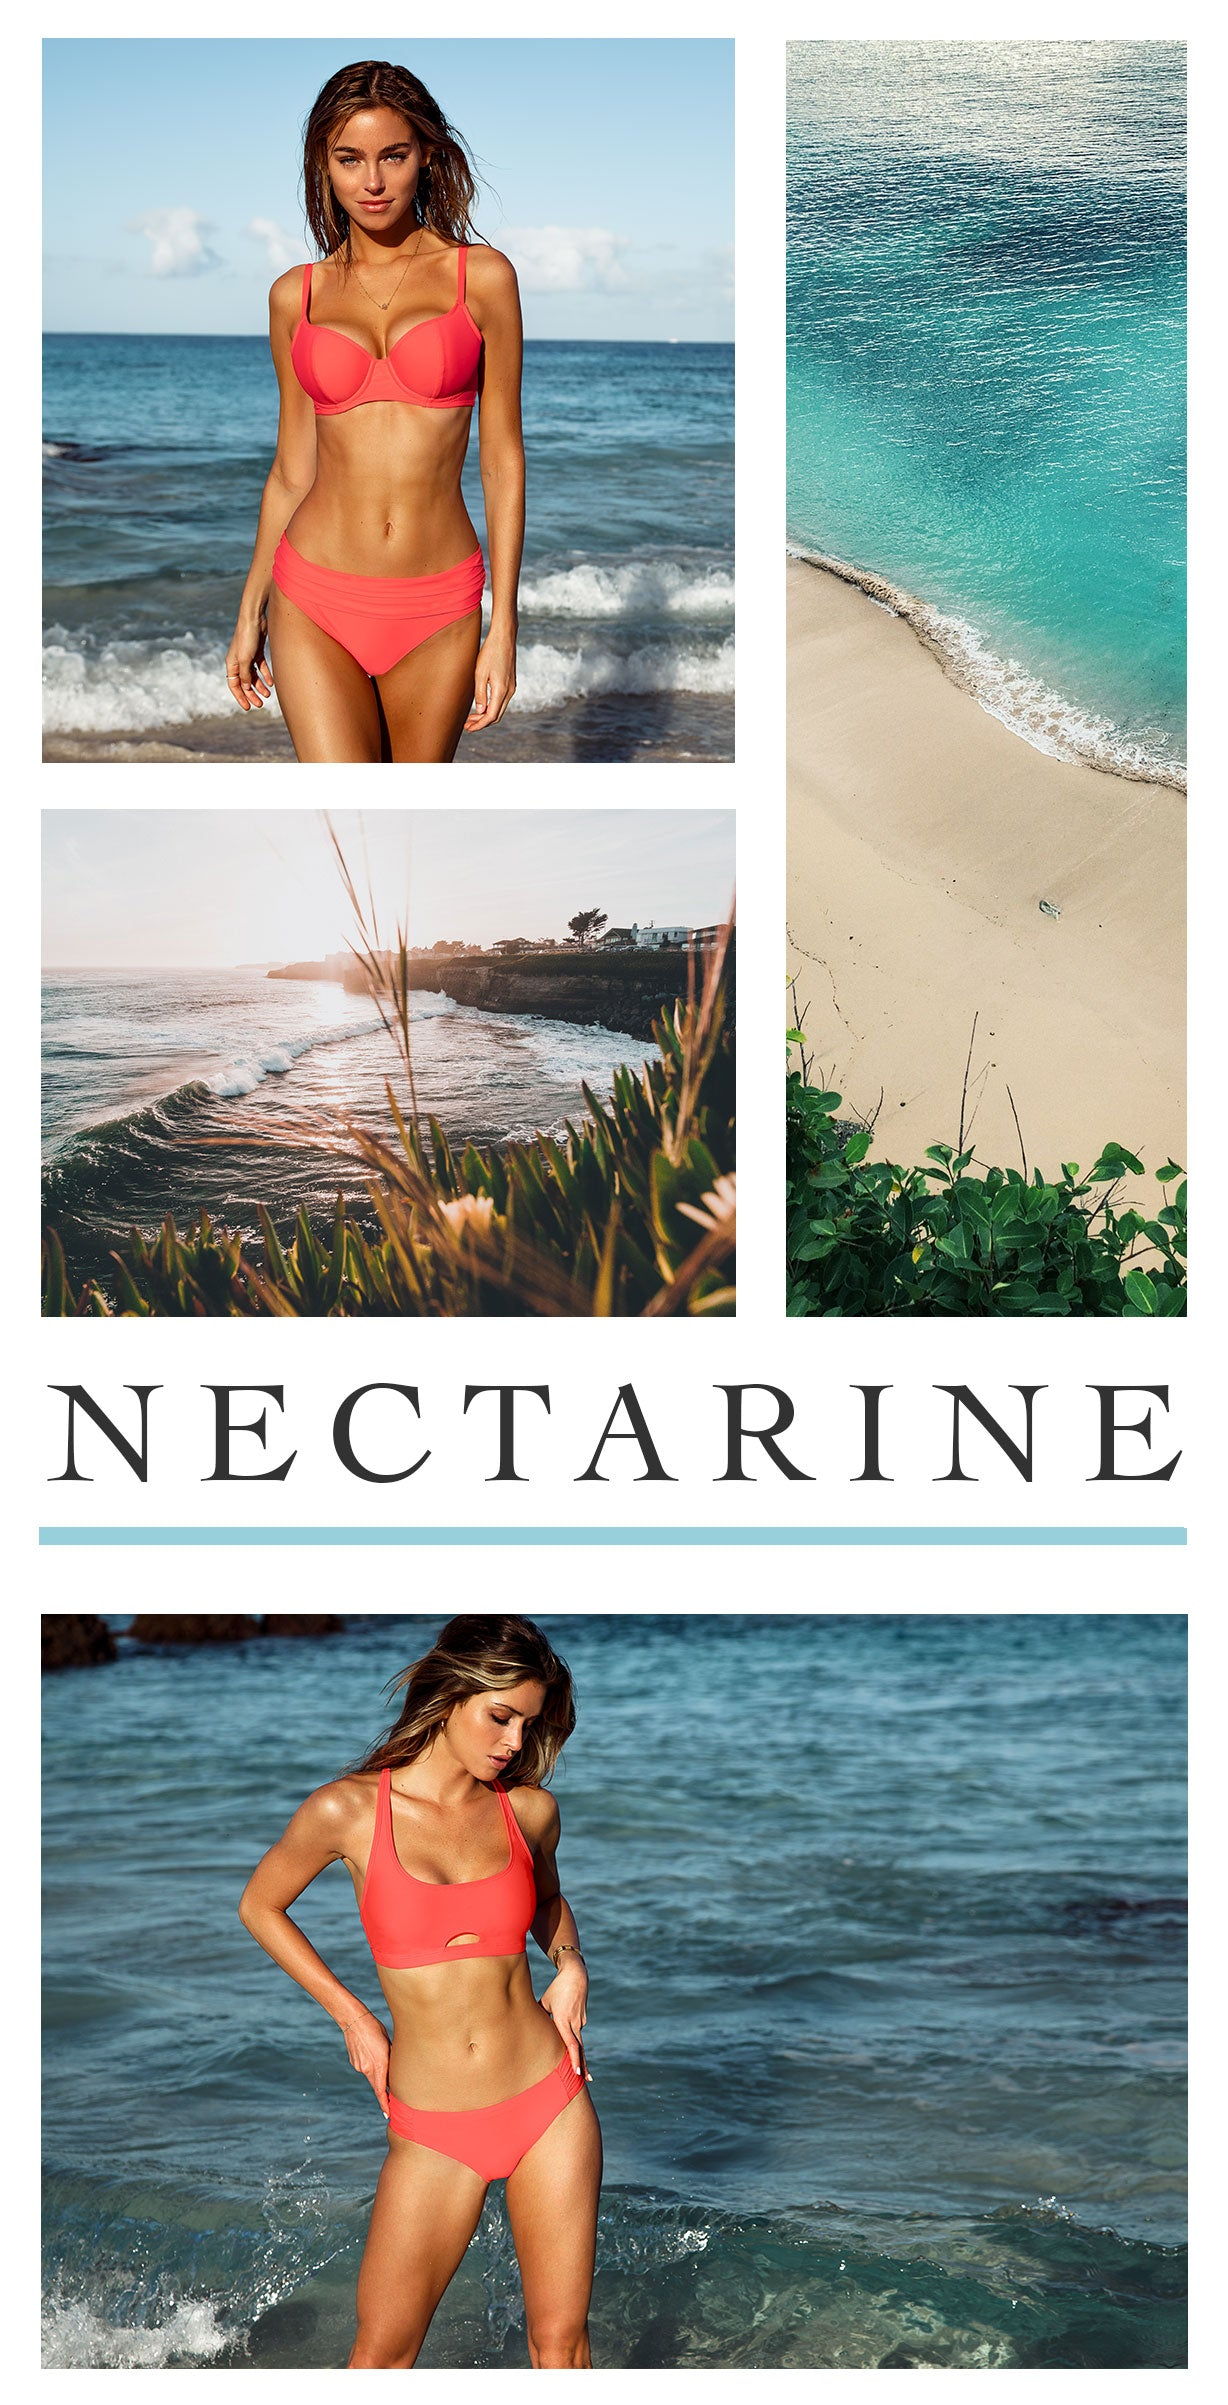 https://sunsetsinc.com/collections/sunsets-nectarine